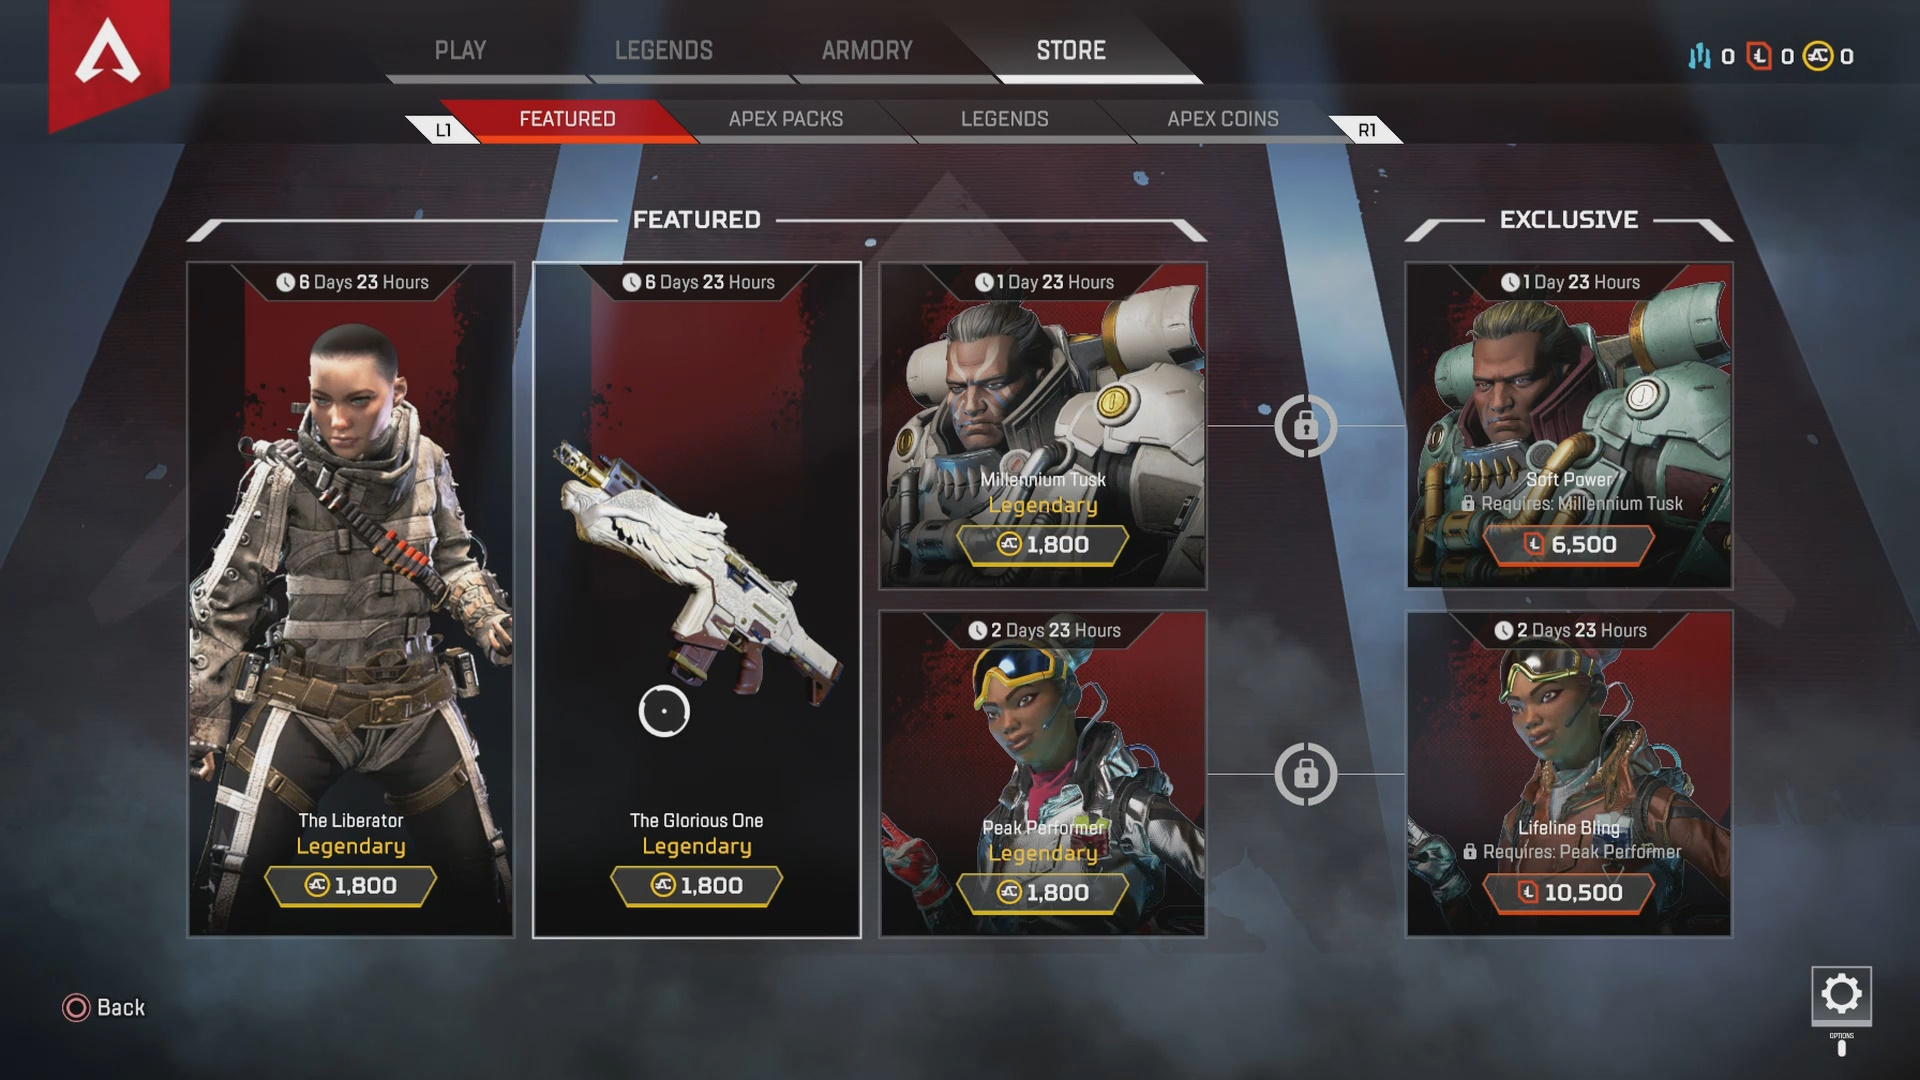 What's For Sale in the Apex Legends Store - March 6, 2019